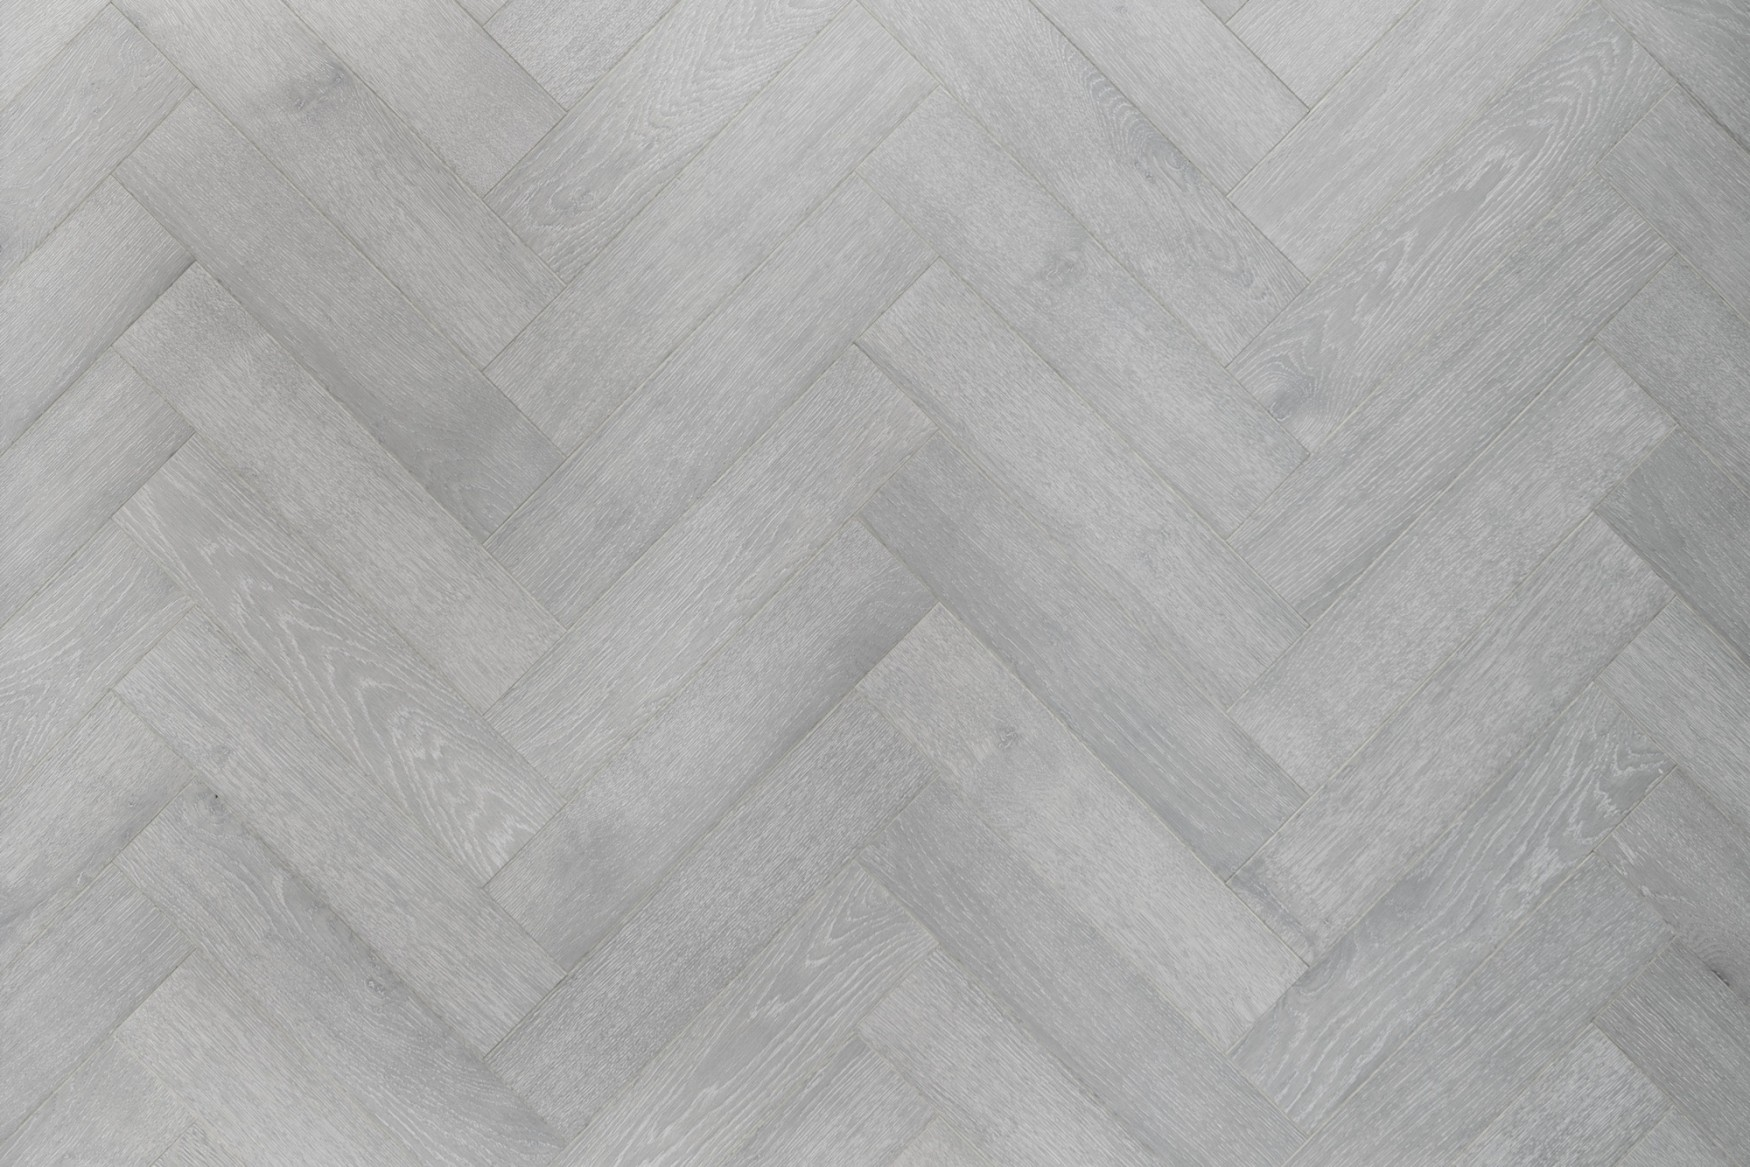 Element7_venetian_grey_oak_herringbone_EDIT_OCT12_3